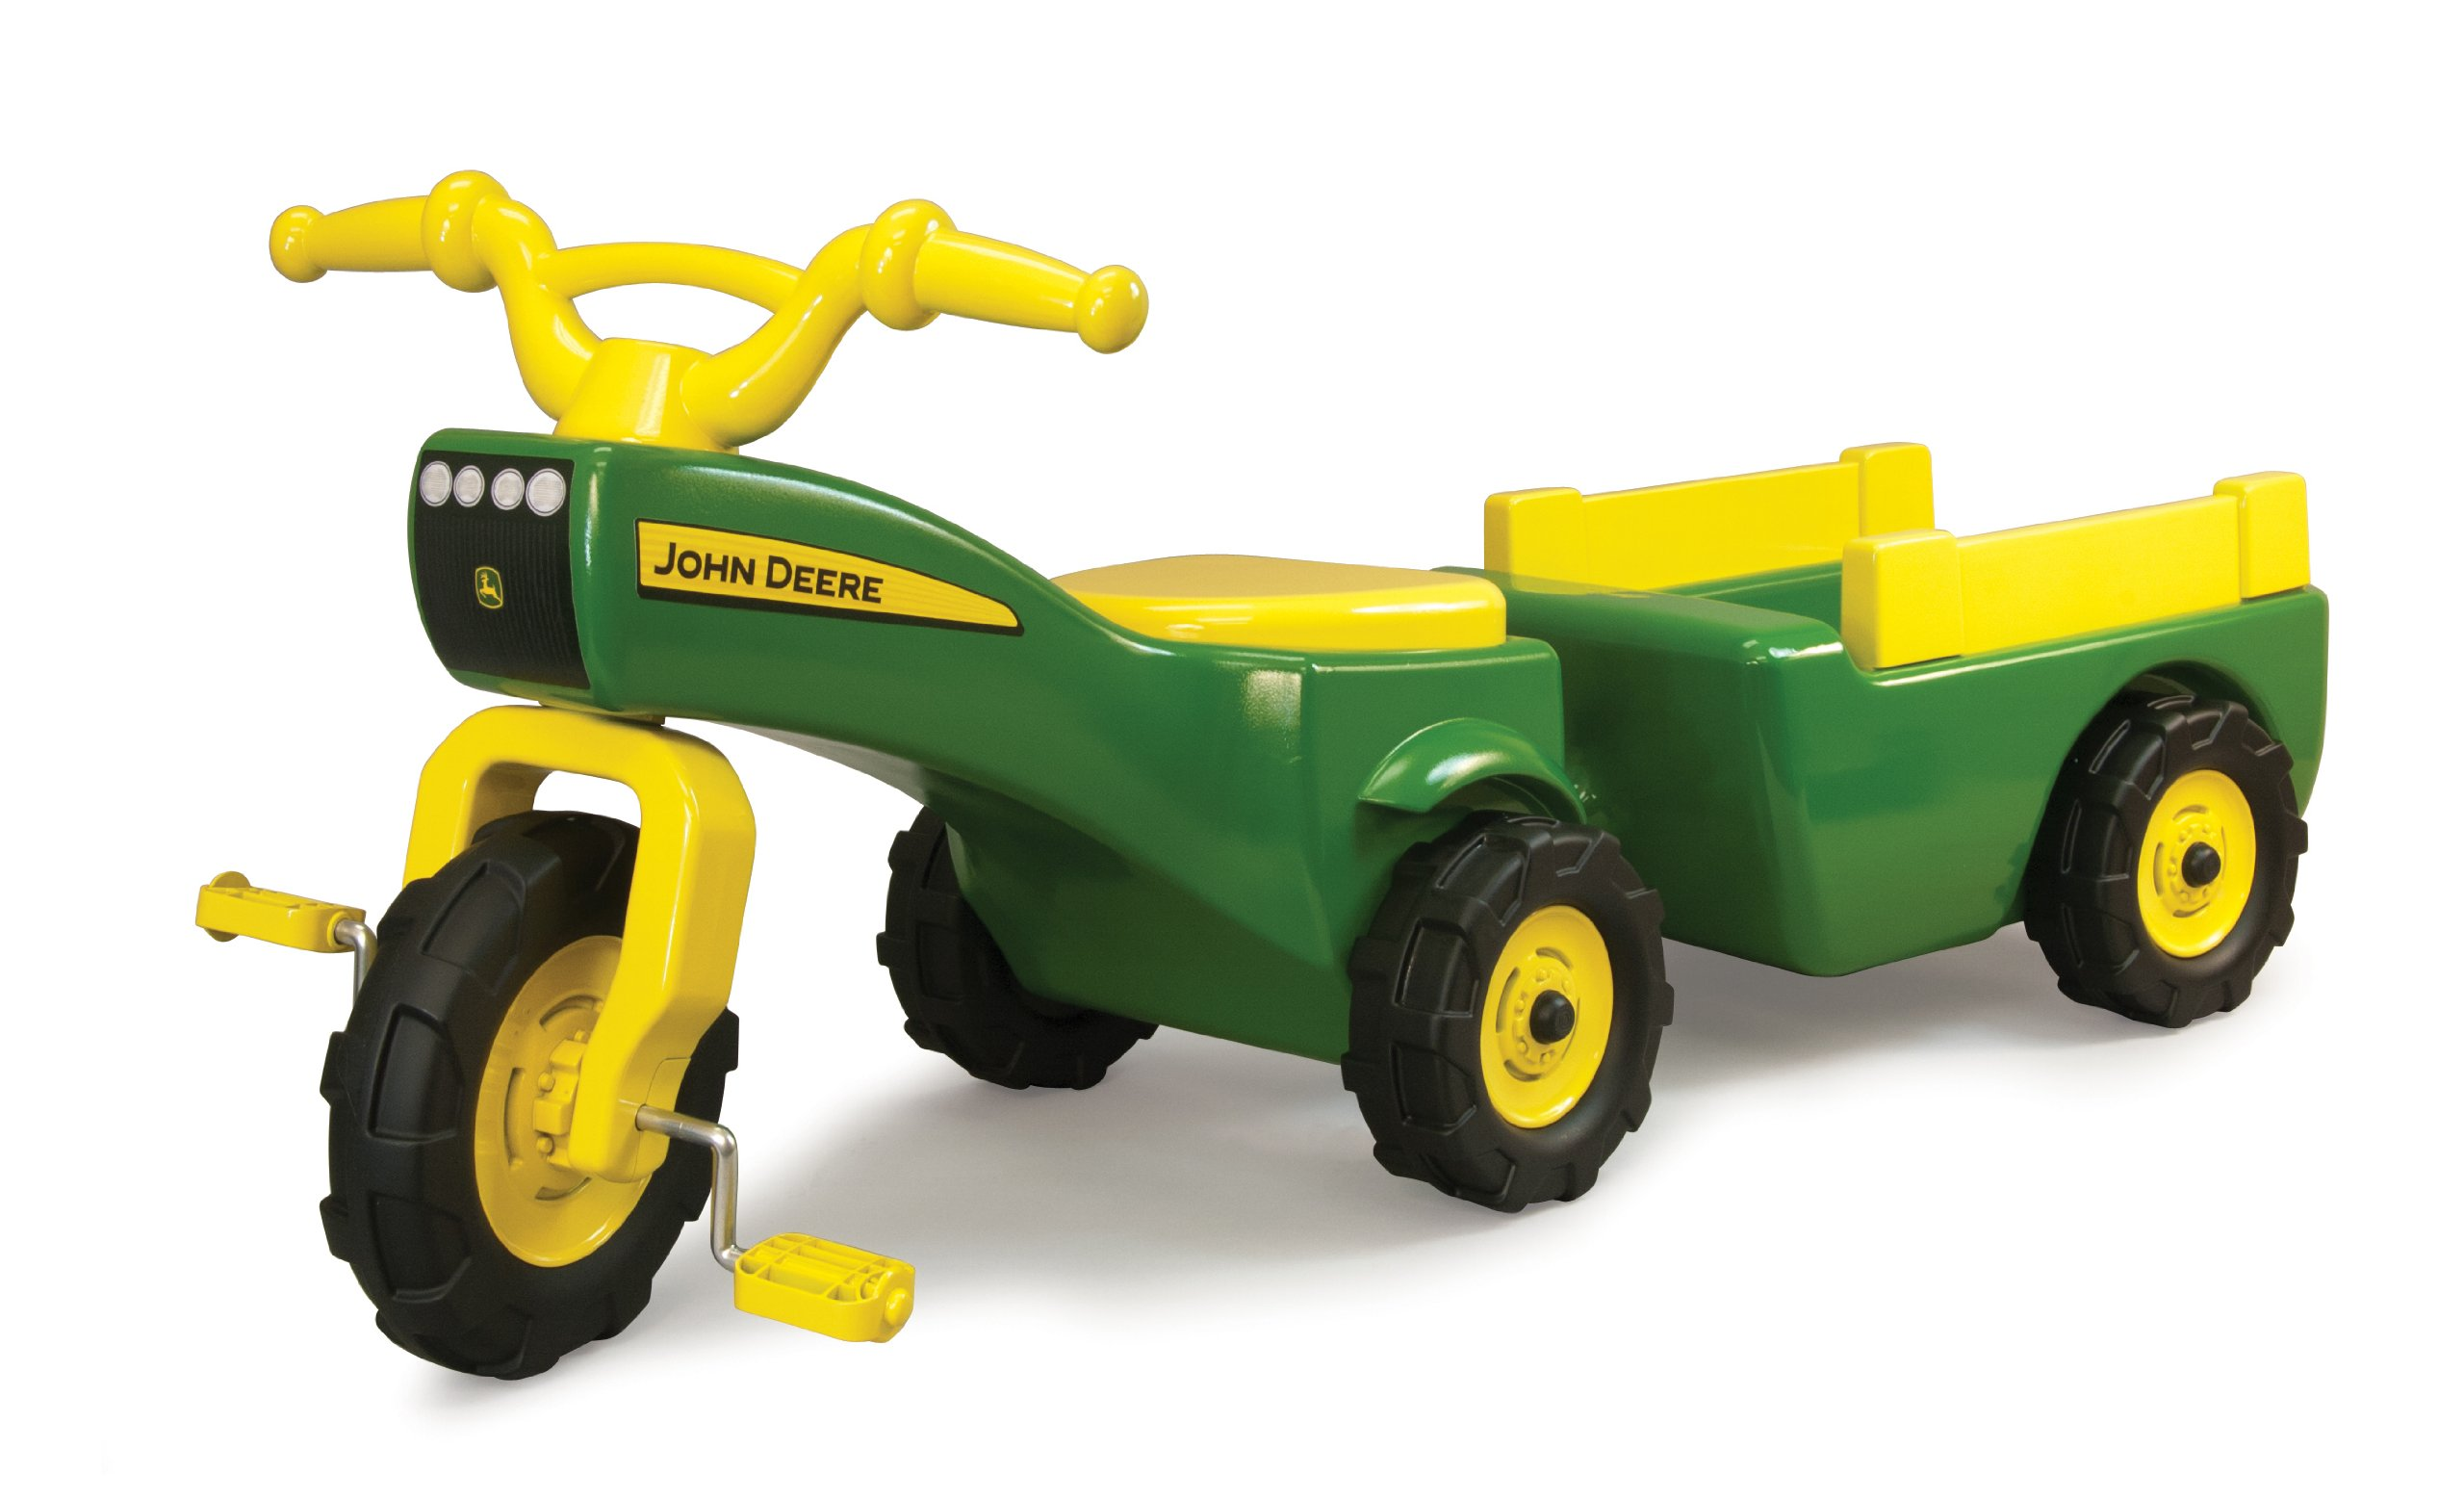 TOMY John Deere Pedal Tractor And Wagon by TOMY